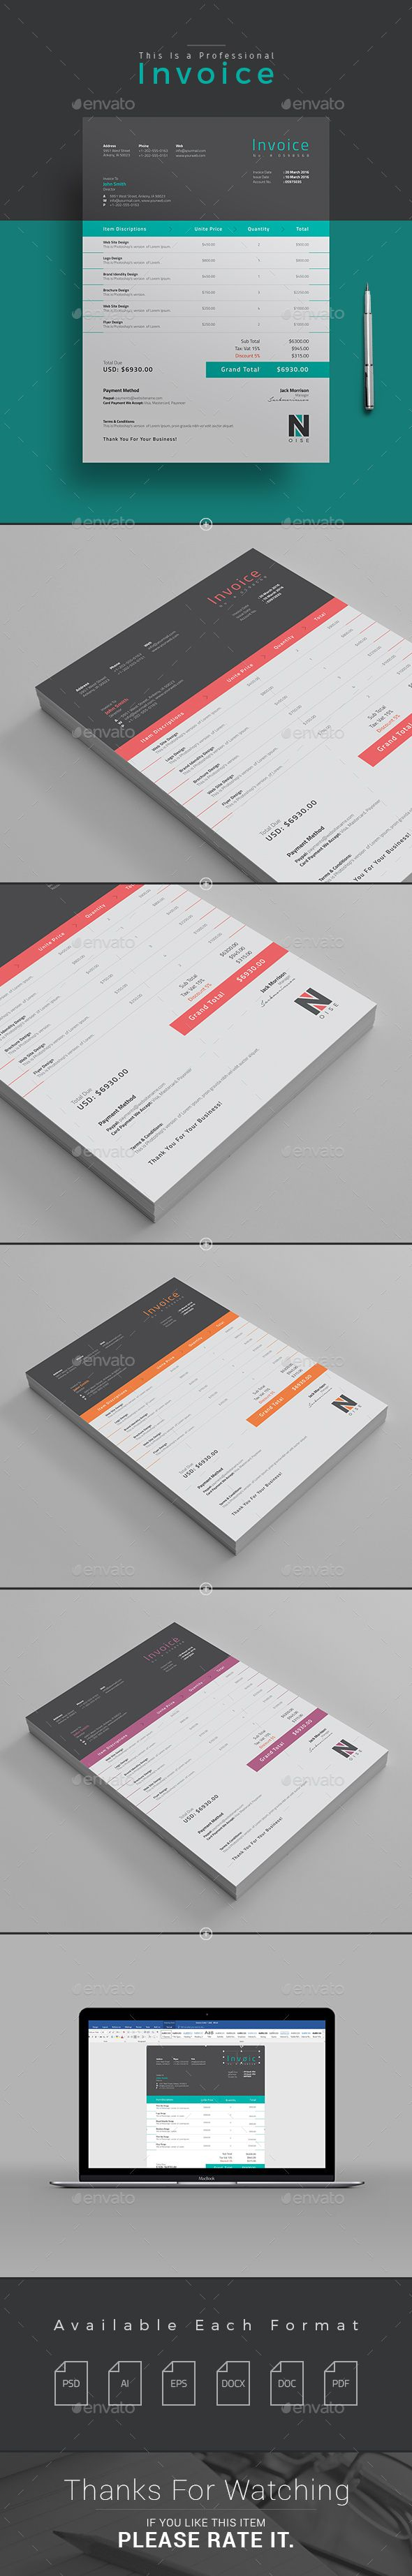 134 best Resume images on Pinterest | Resume design, Resume ...